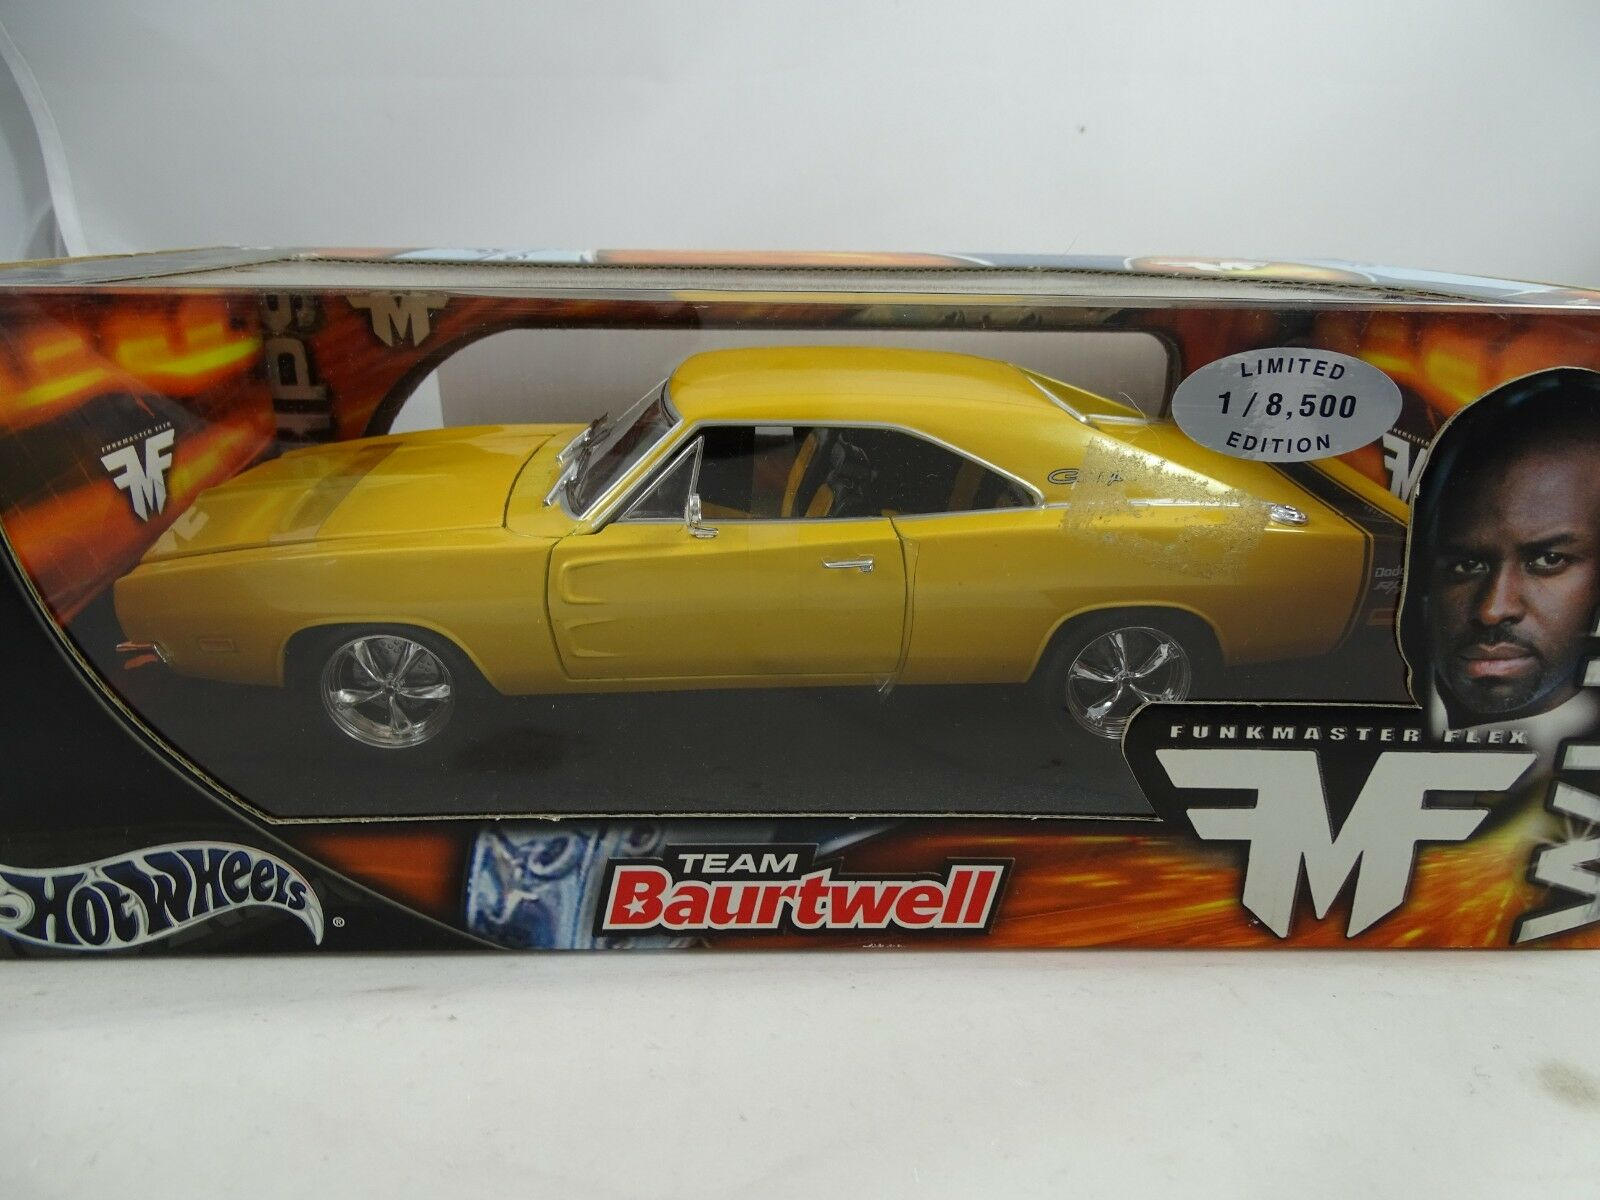 1 18 HOT WHEELS Whips-Radio Master FLEX TEAM baurtwell Charger giallo-rarità